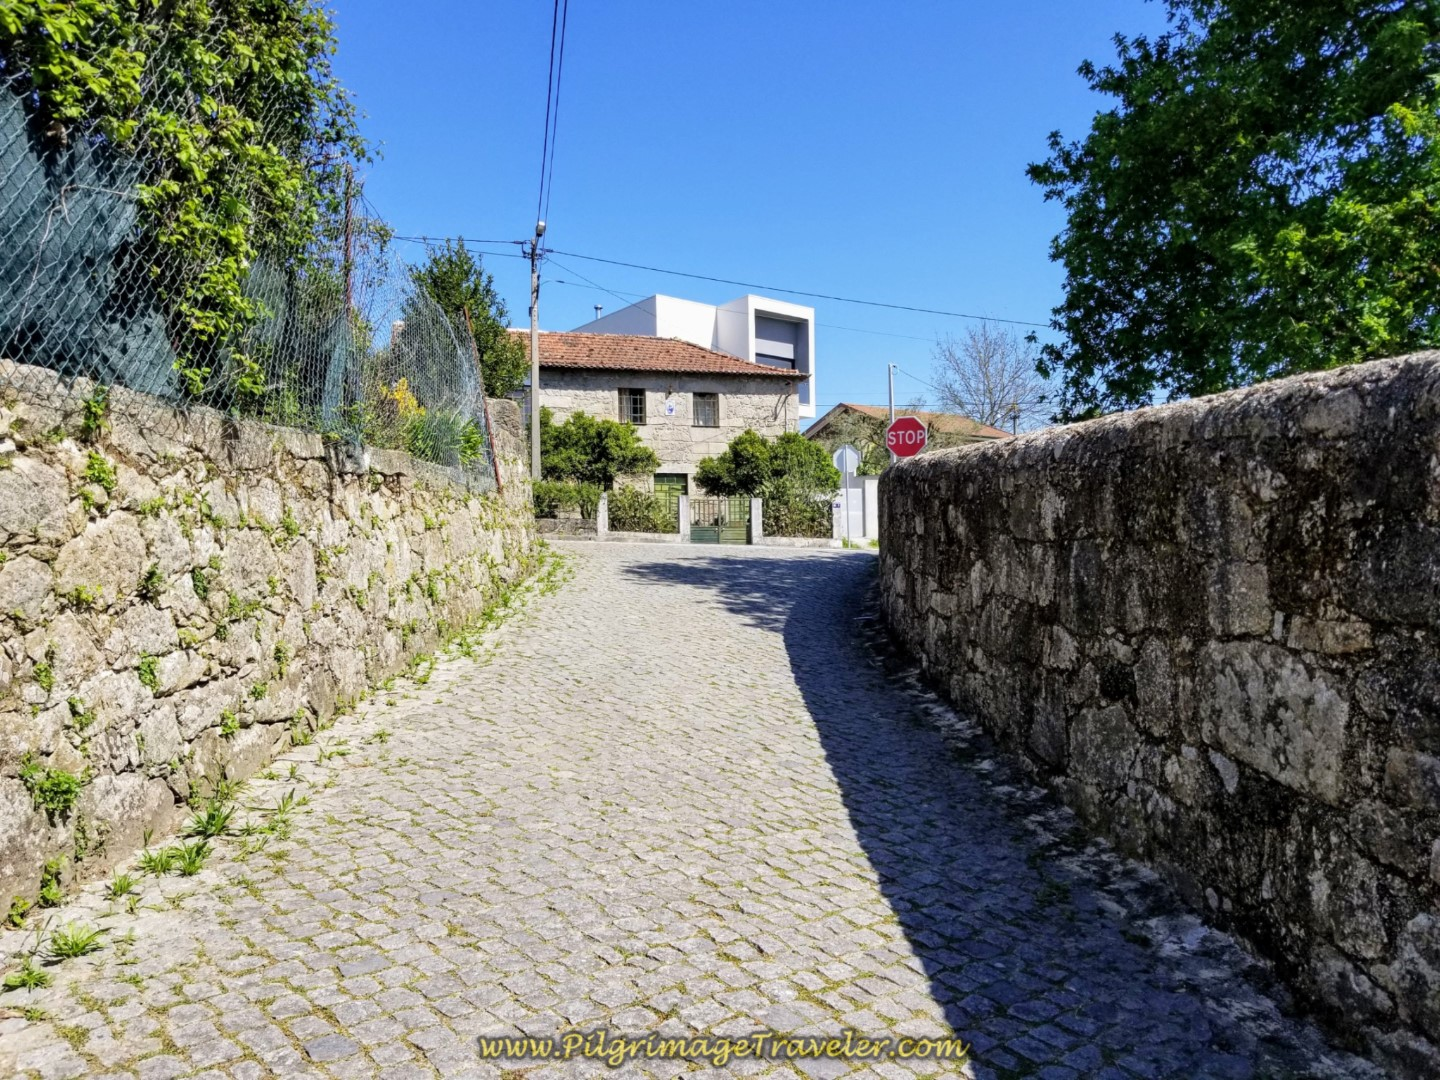 Crossing the N308 in Balugães on day seventeen on the Central Route of the Portuguese Camino